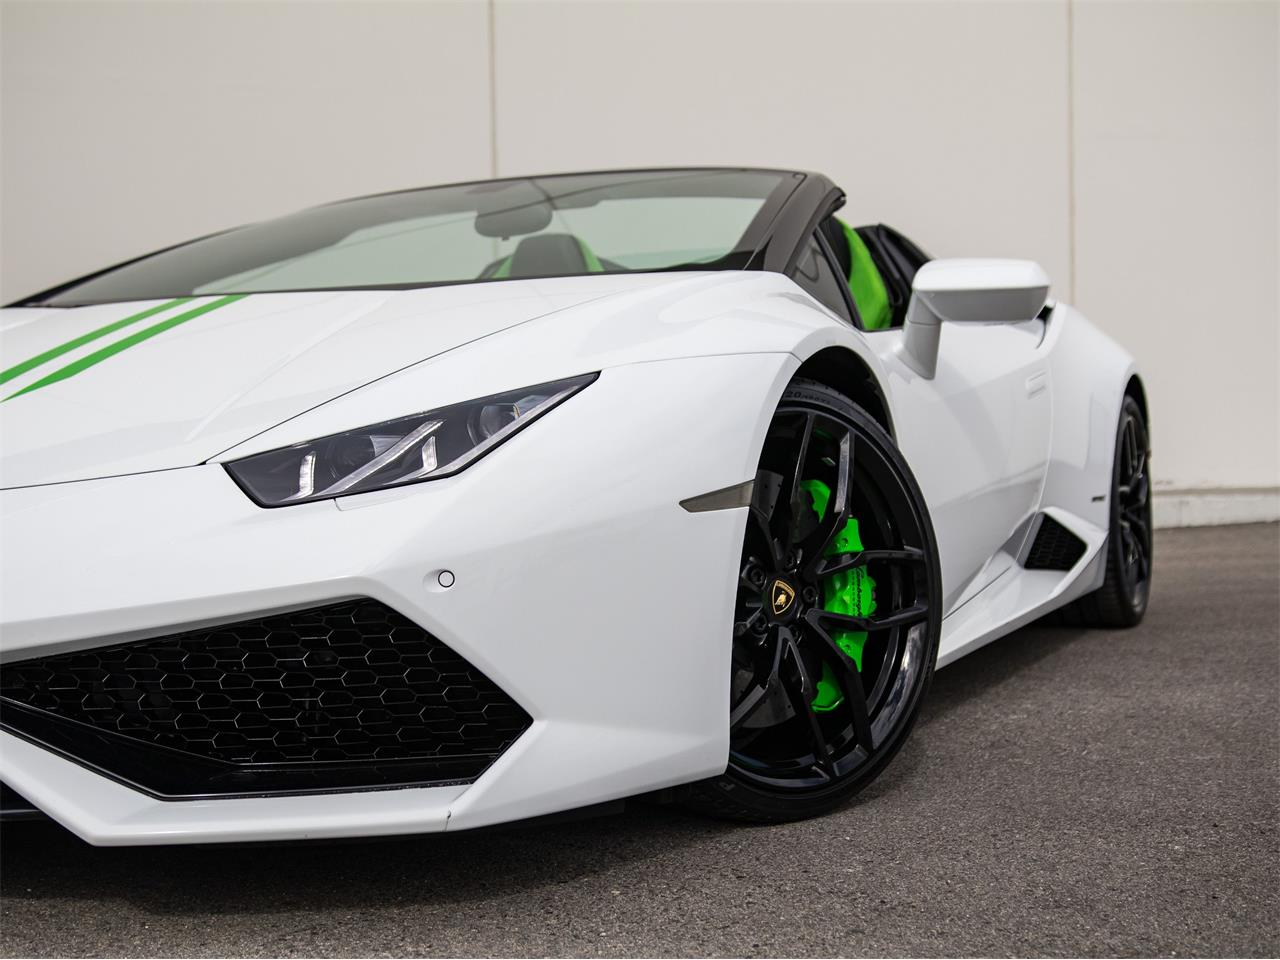 2017 Lamborghini Huracan (CC-1335459) for sale in Kelowna, British Columbia